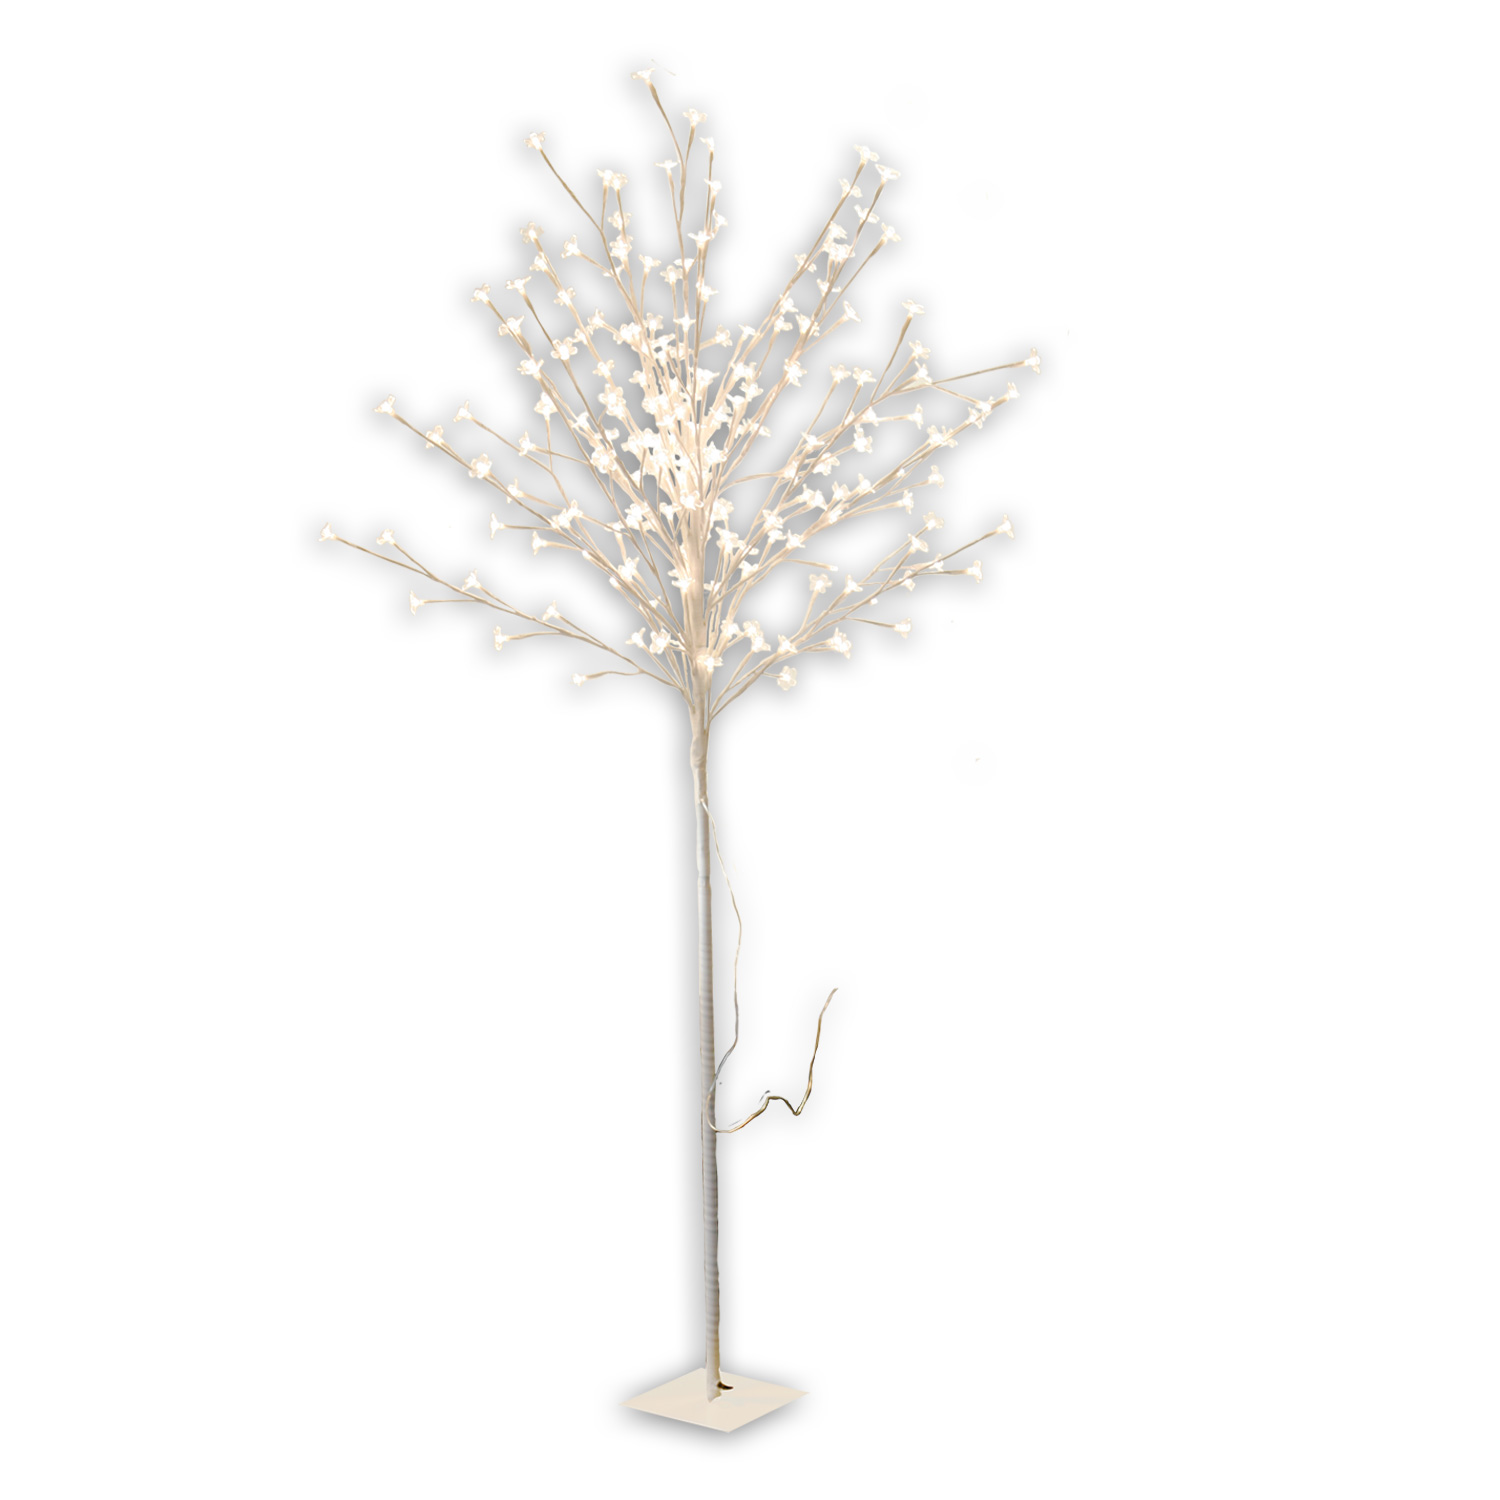 led baum lichtbaum 200 leds 150cm stamm perlmutt silber schwarz bl te weiss pink ebay. Black Bedroom Furniture Sets. Home Design Ideas